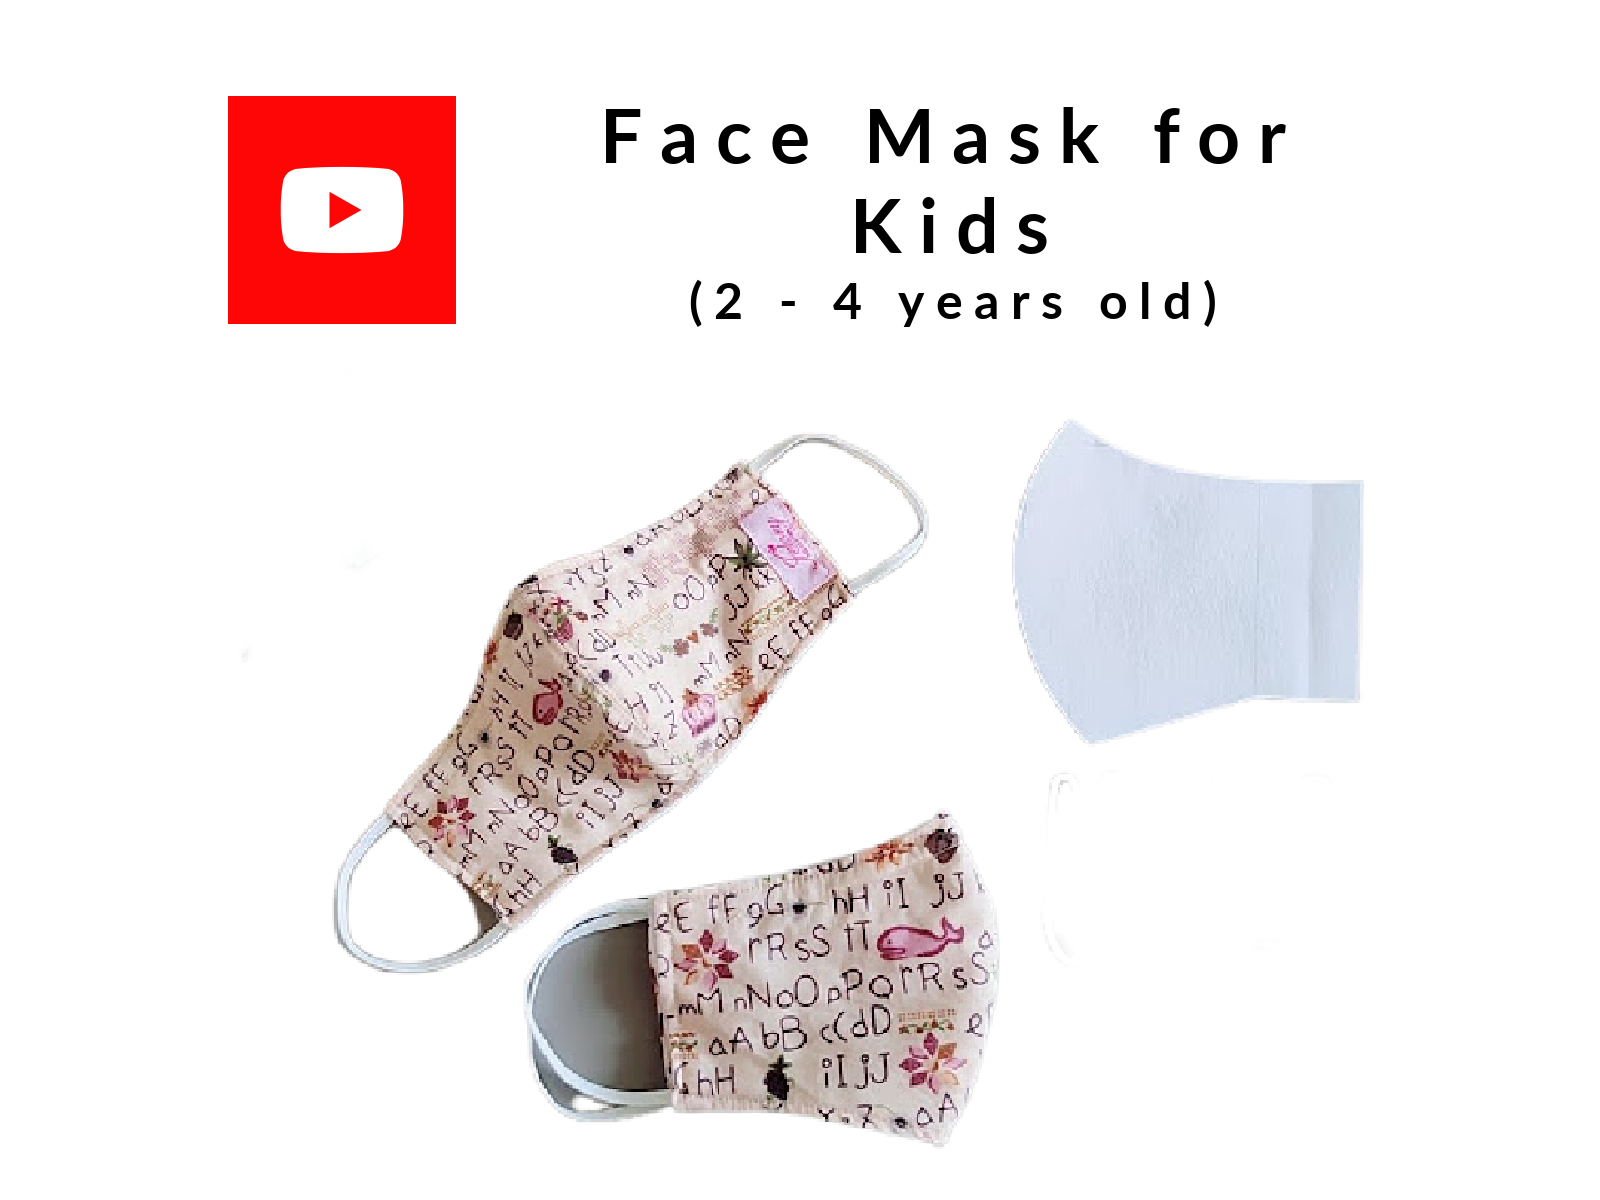 Face Mask for Kids  (2 - 4 years old)